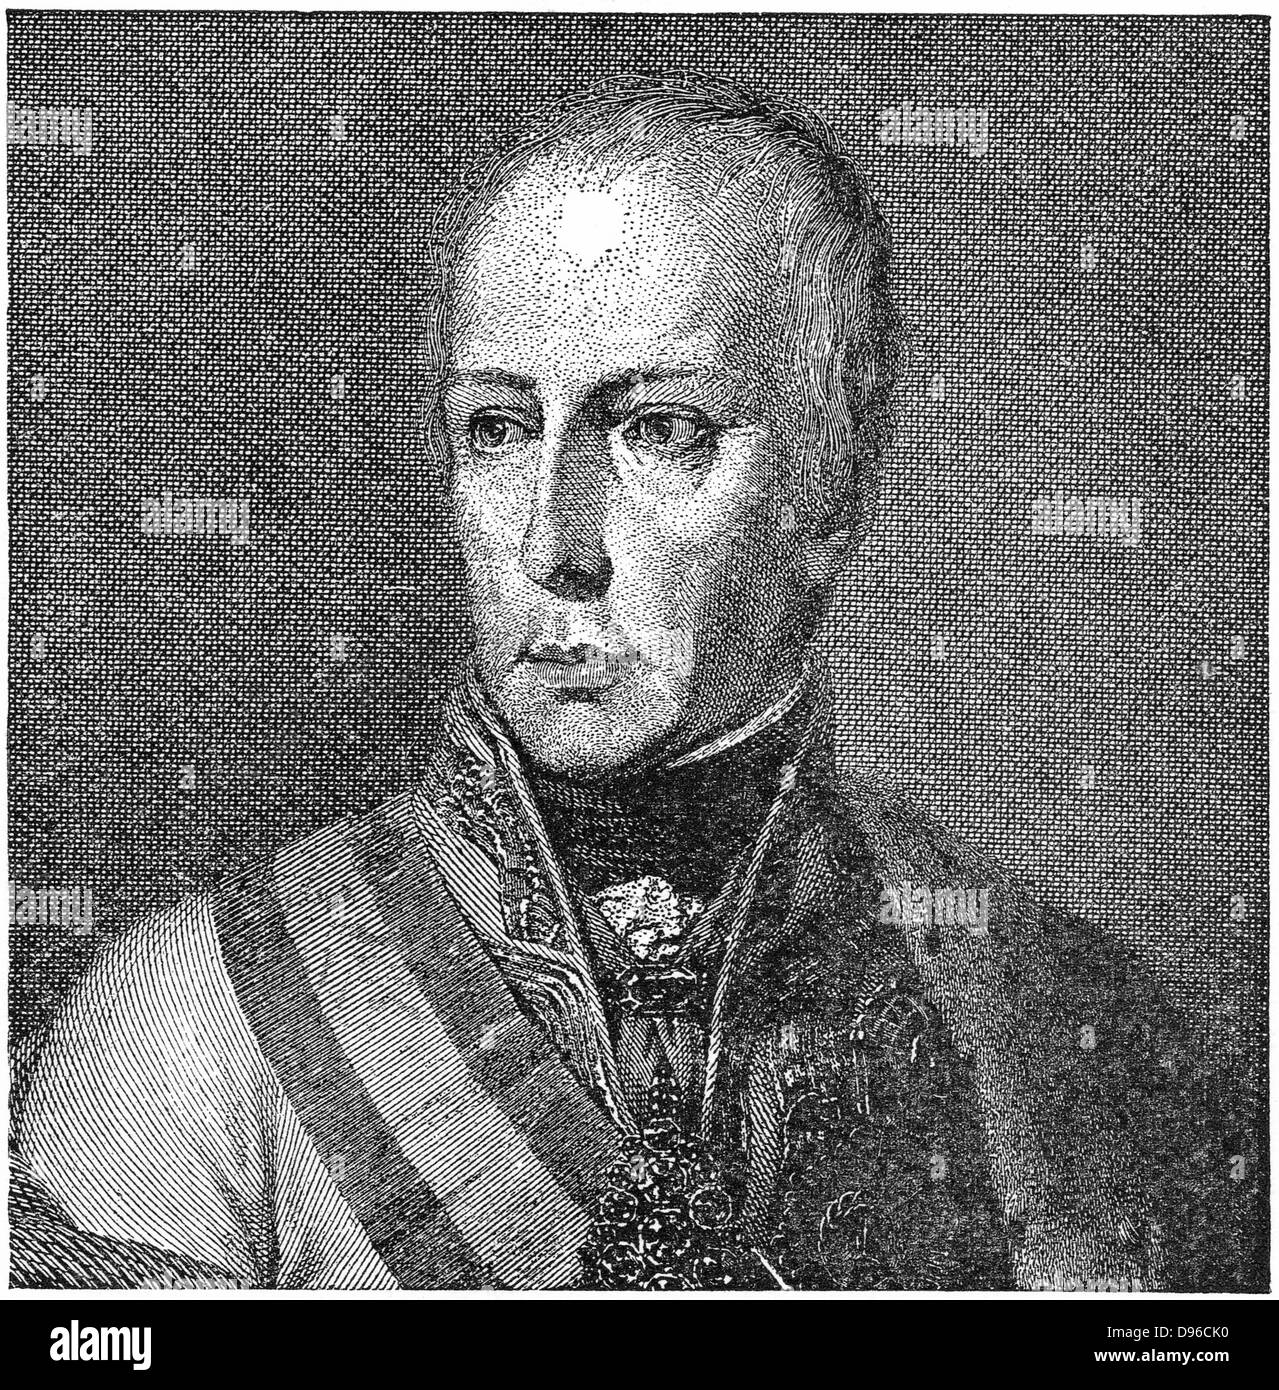 Francis II (1768-1835) Holy Roman Emperor from 1792. Francis I of Austria. Engraving. - Stock Image